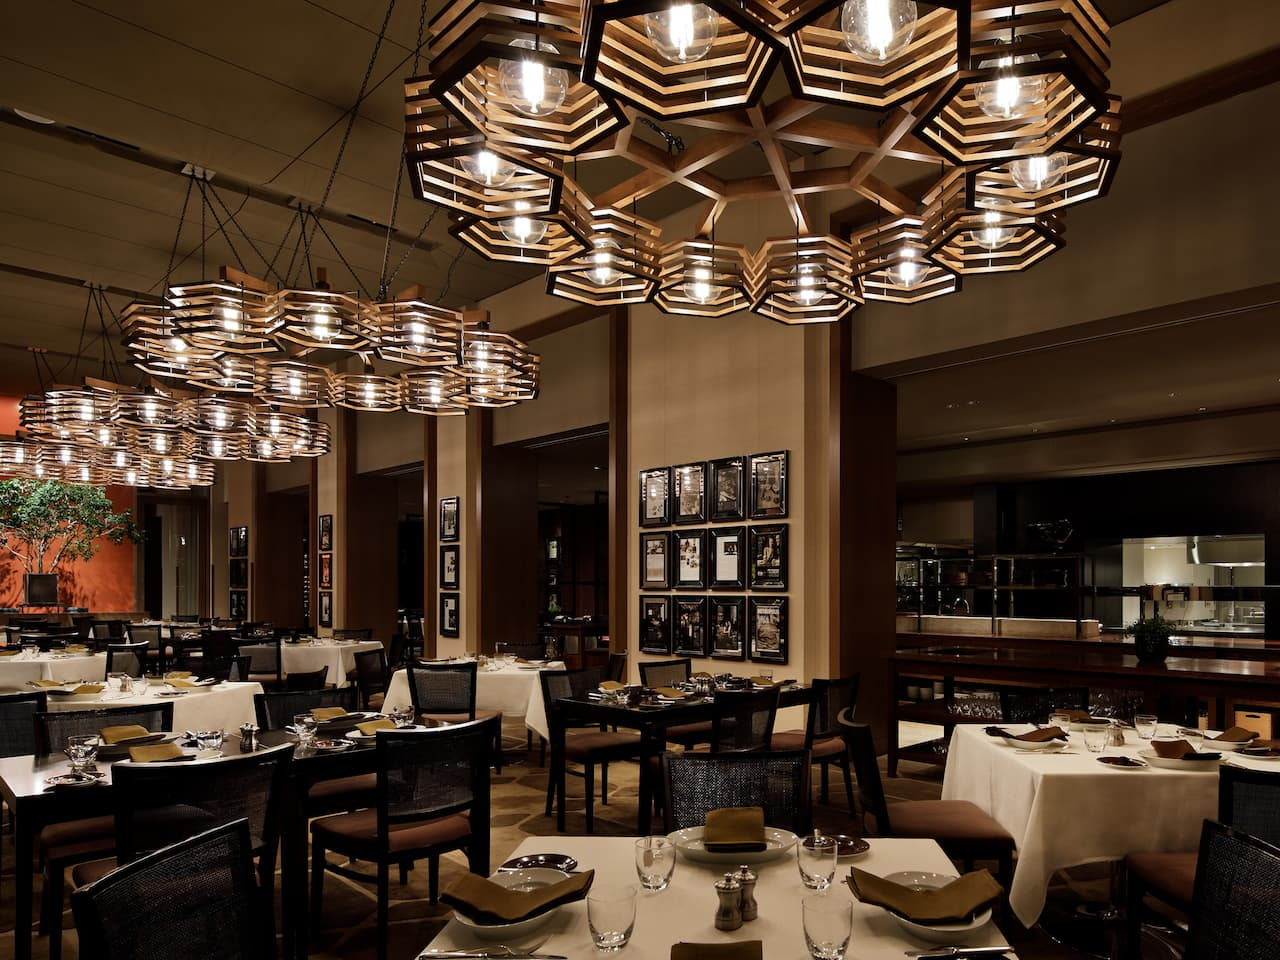 Restaurant dining Interior